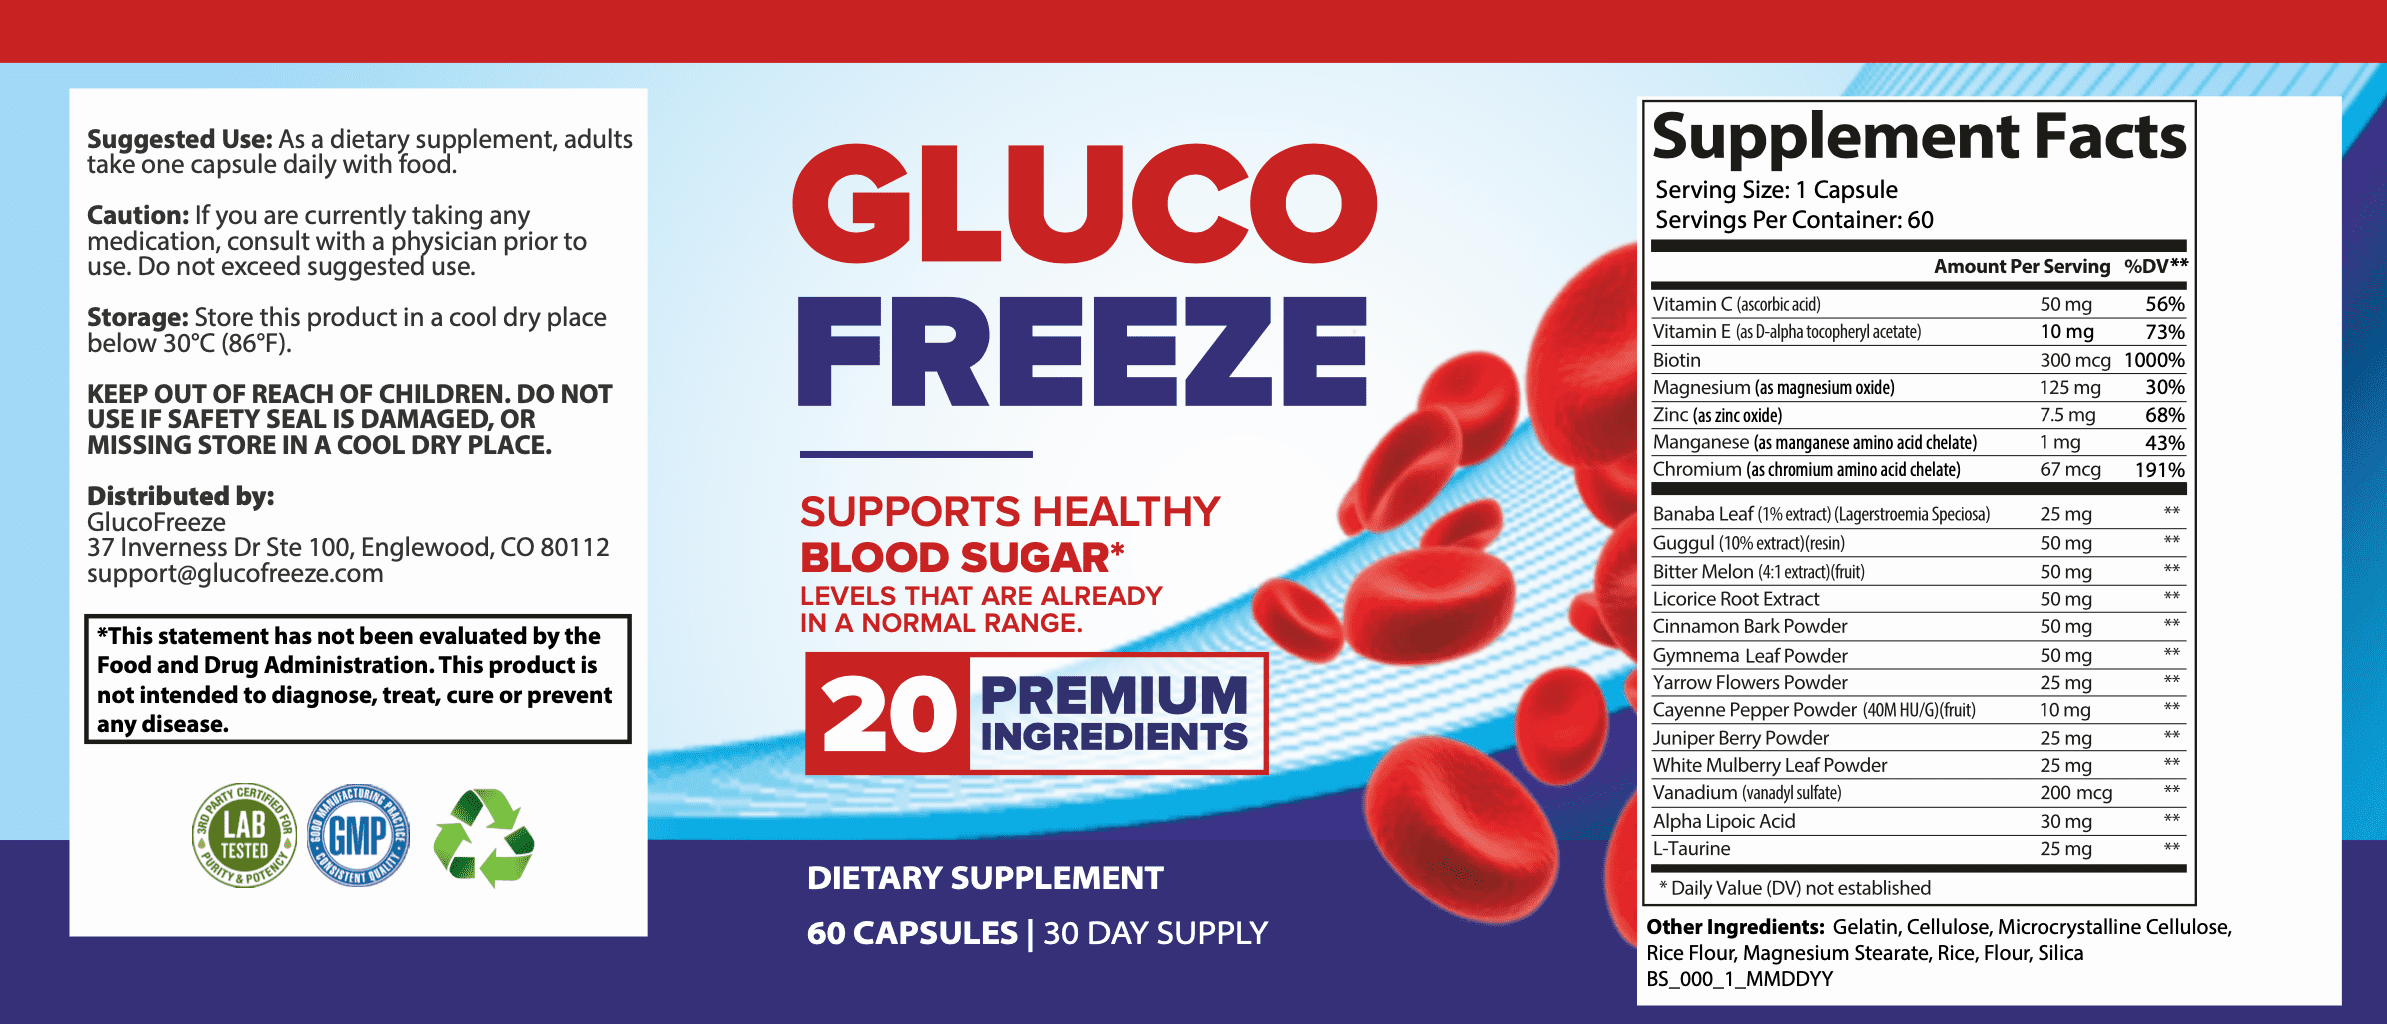 Gluco Freeze ™ - Results & Ingredients, Reviews - Does Its Really Works?